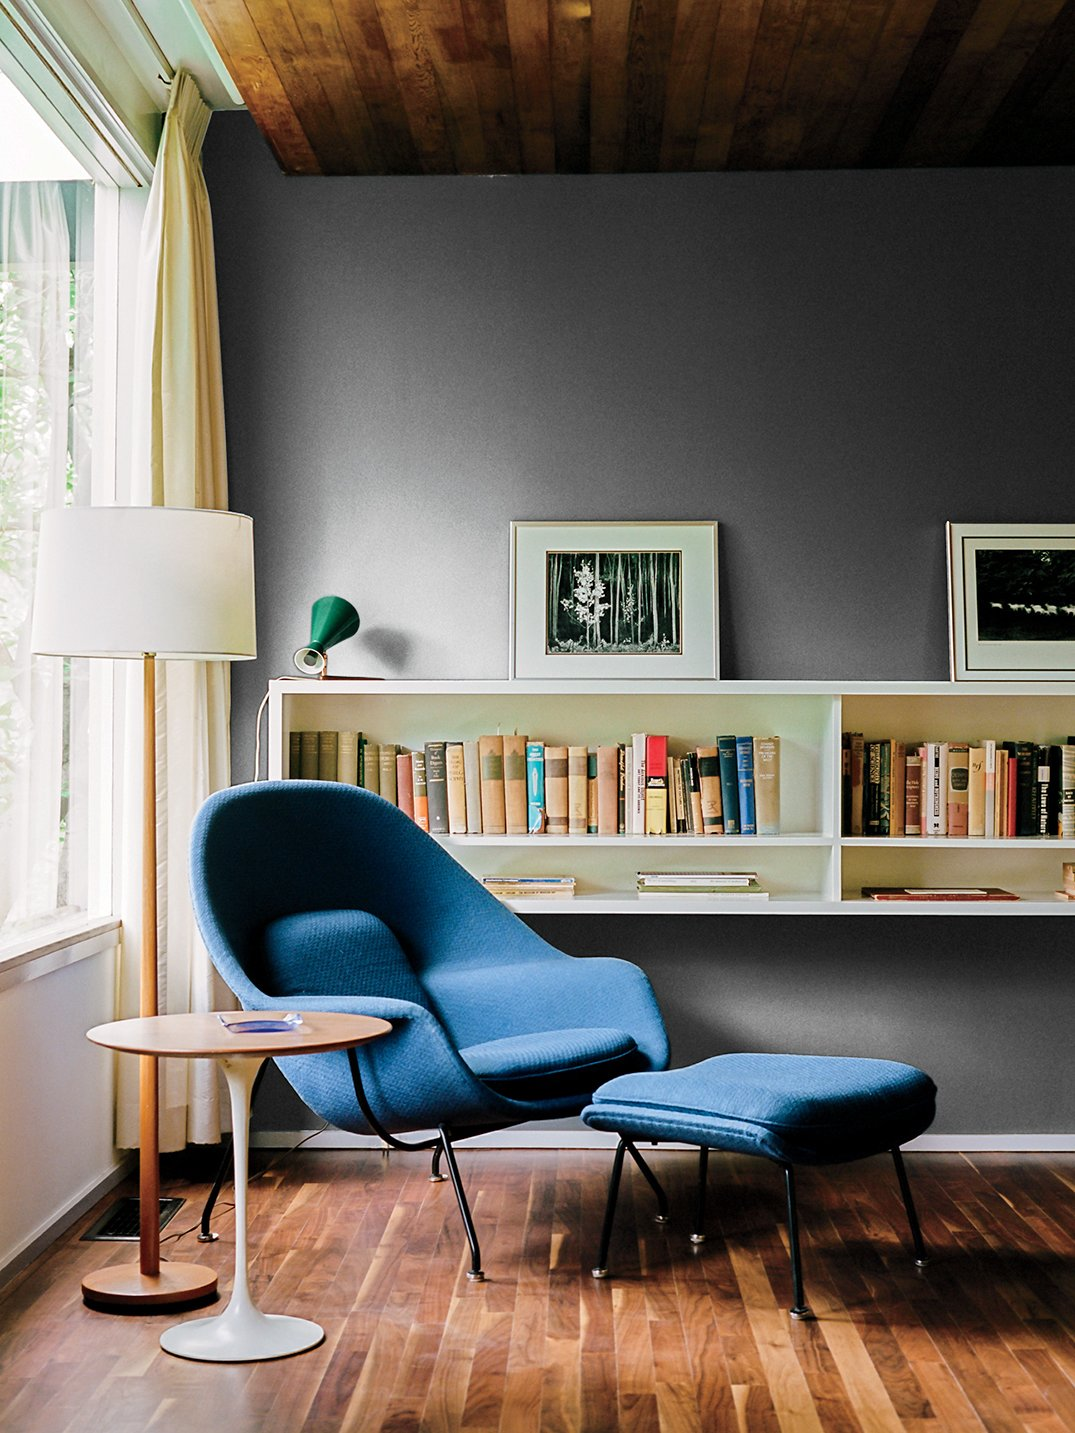 A walnut-topped table and Womb chair, both by Eero Saarinen for Knoll, offer a cozy spot for reading. Tagged: Living Room, Floor Lighting, Medium Hardwood Floor, Bookcase, Ottomans, Storage, Shelves, and End Tables.  47+ Midcentury Modern Homes Across America by Luke Hopping from Kansas City Royal